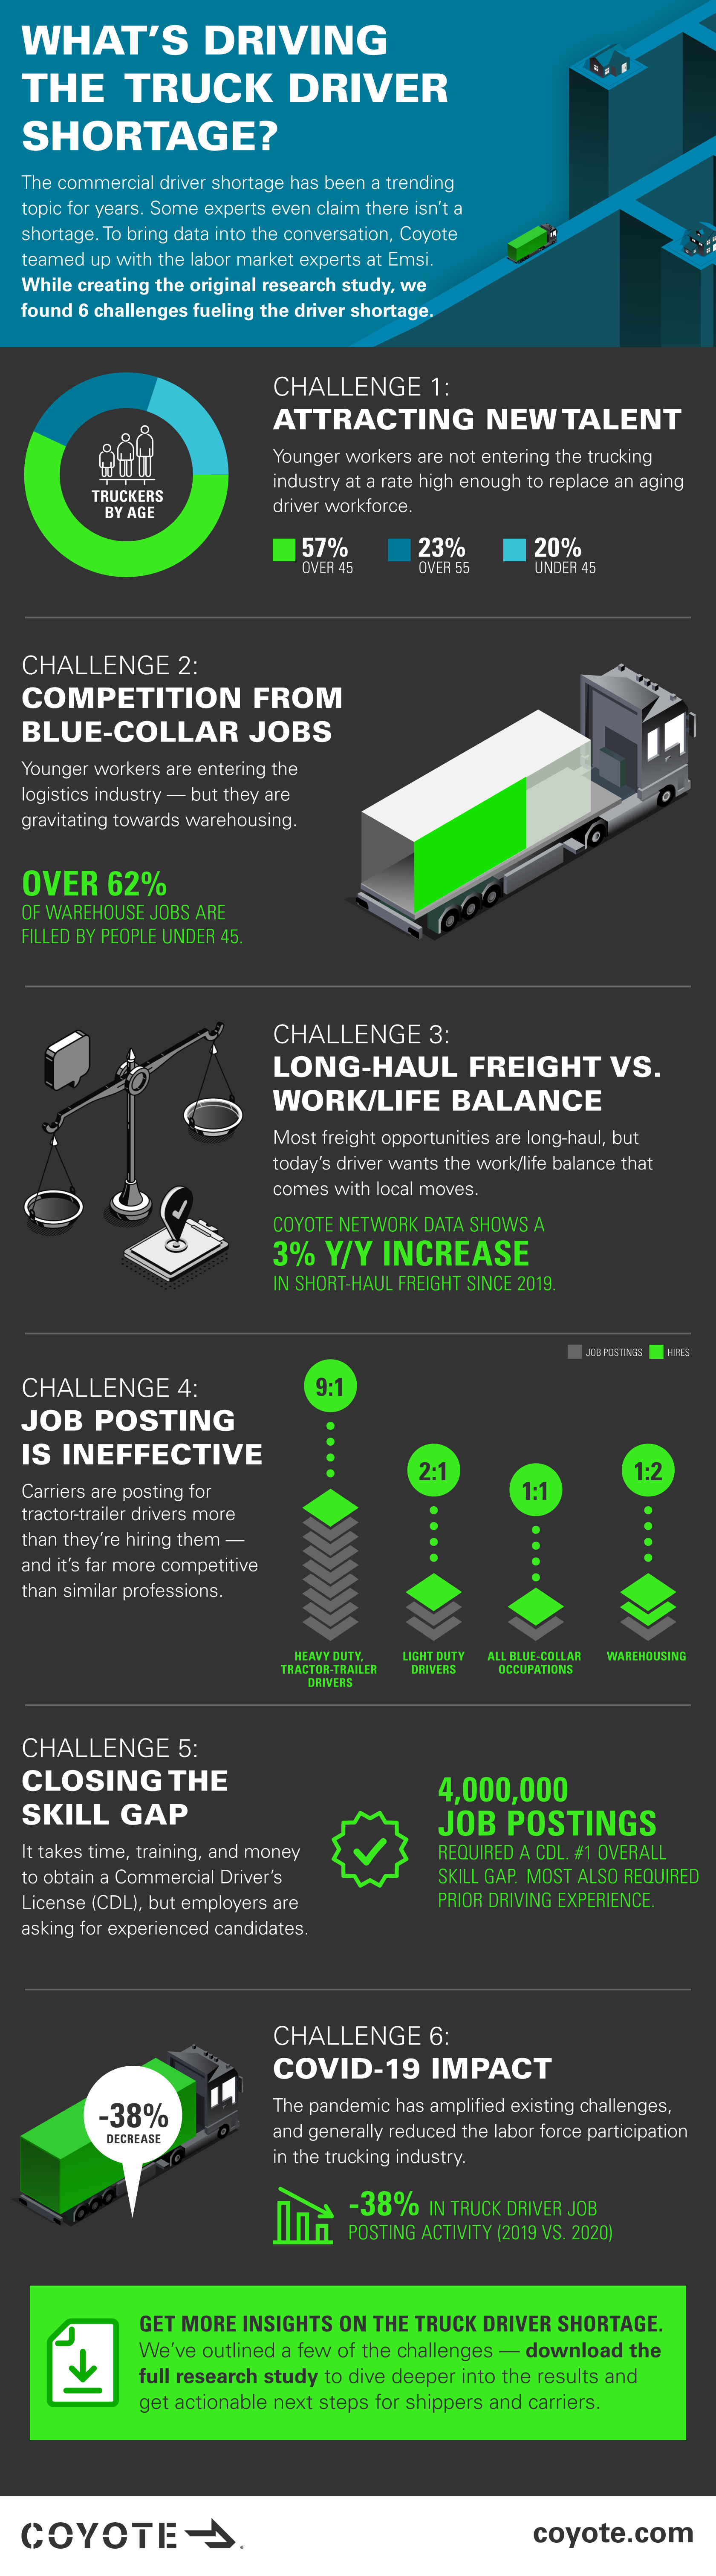 Truck driver shortage infographic: 6 Key challenges for driver labor market in 2021